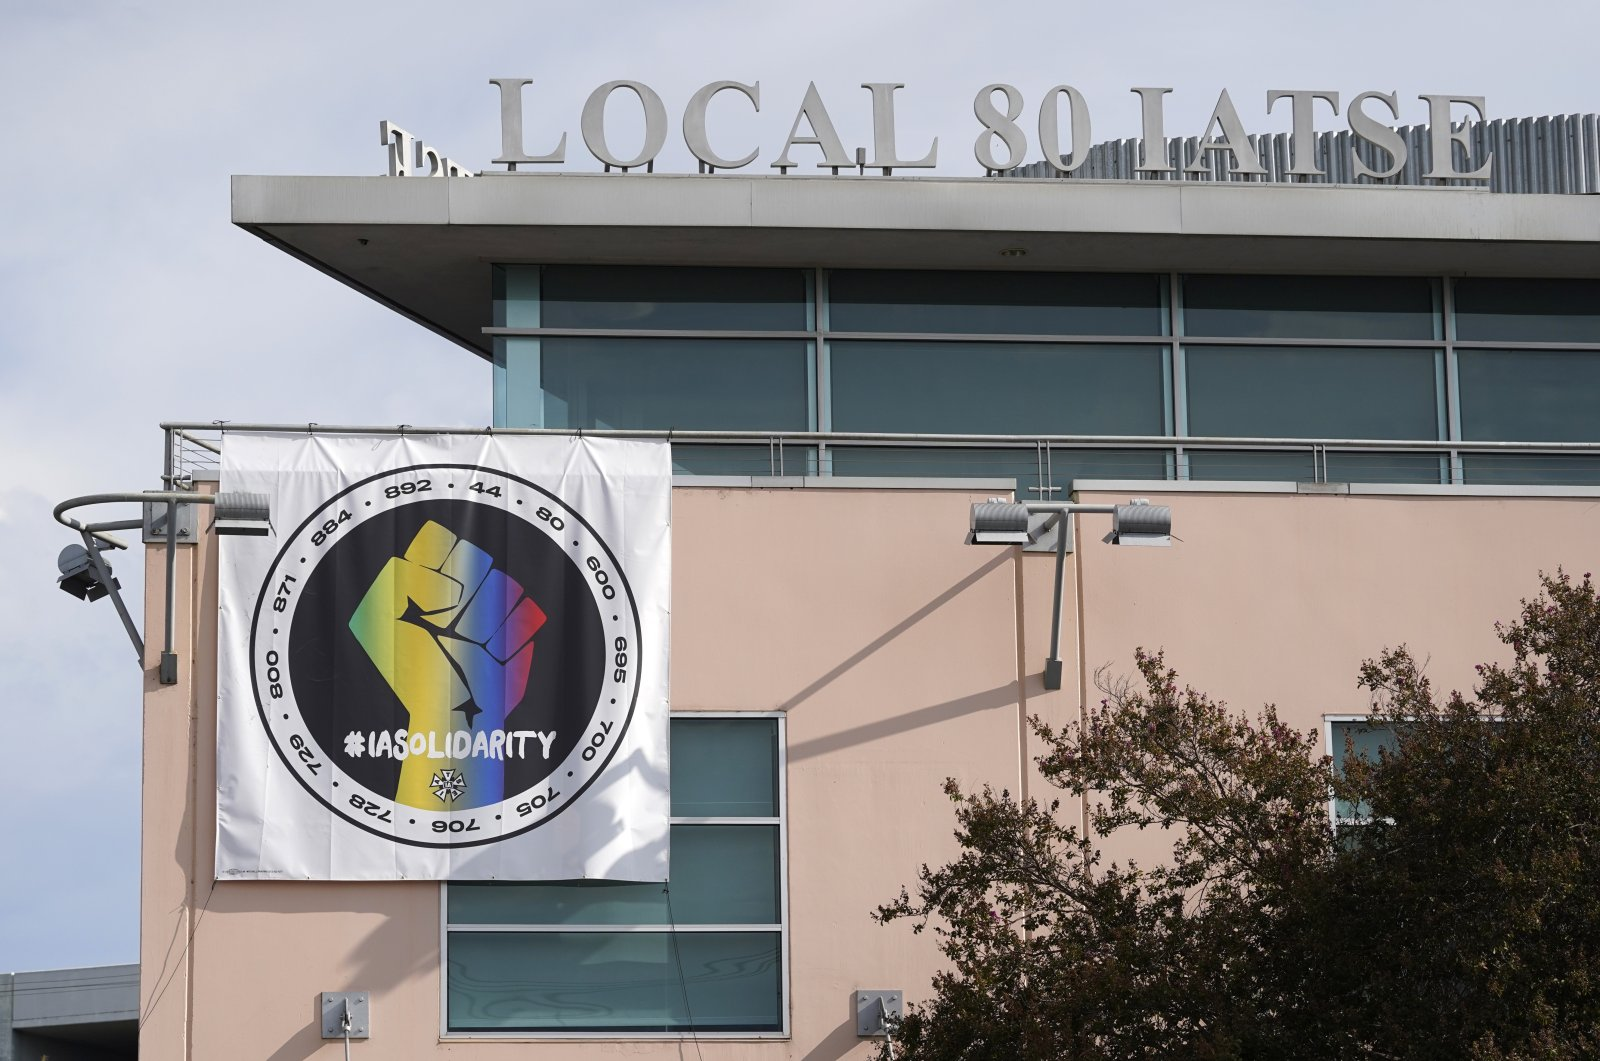 A poster advocating union solidarity hangs from the office building housing the International Alliance of Theatrical Stage Employees Local 80, in Burbank, California, U.S., Oct. 4, 2021. (AP Photo)